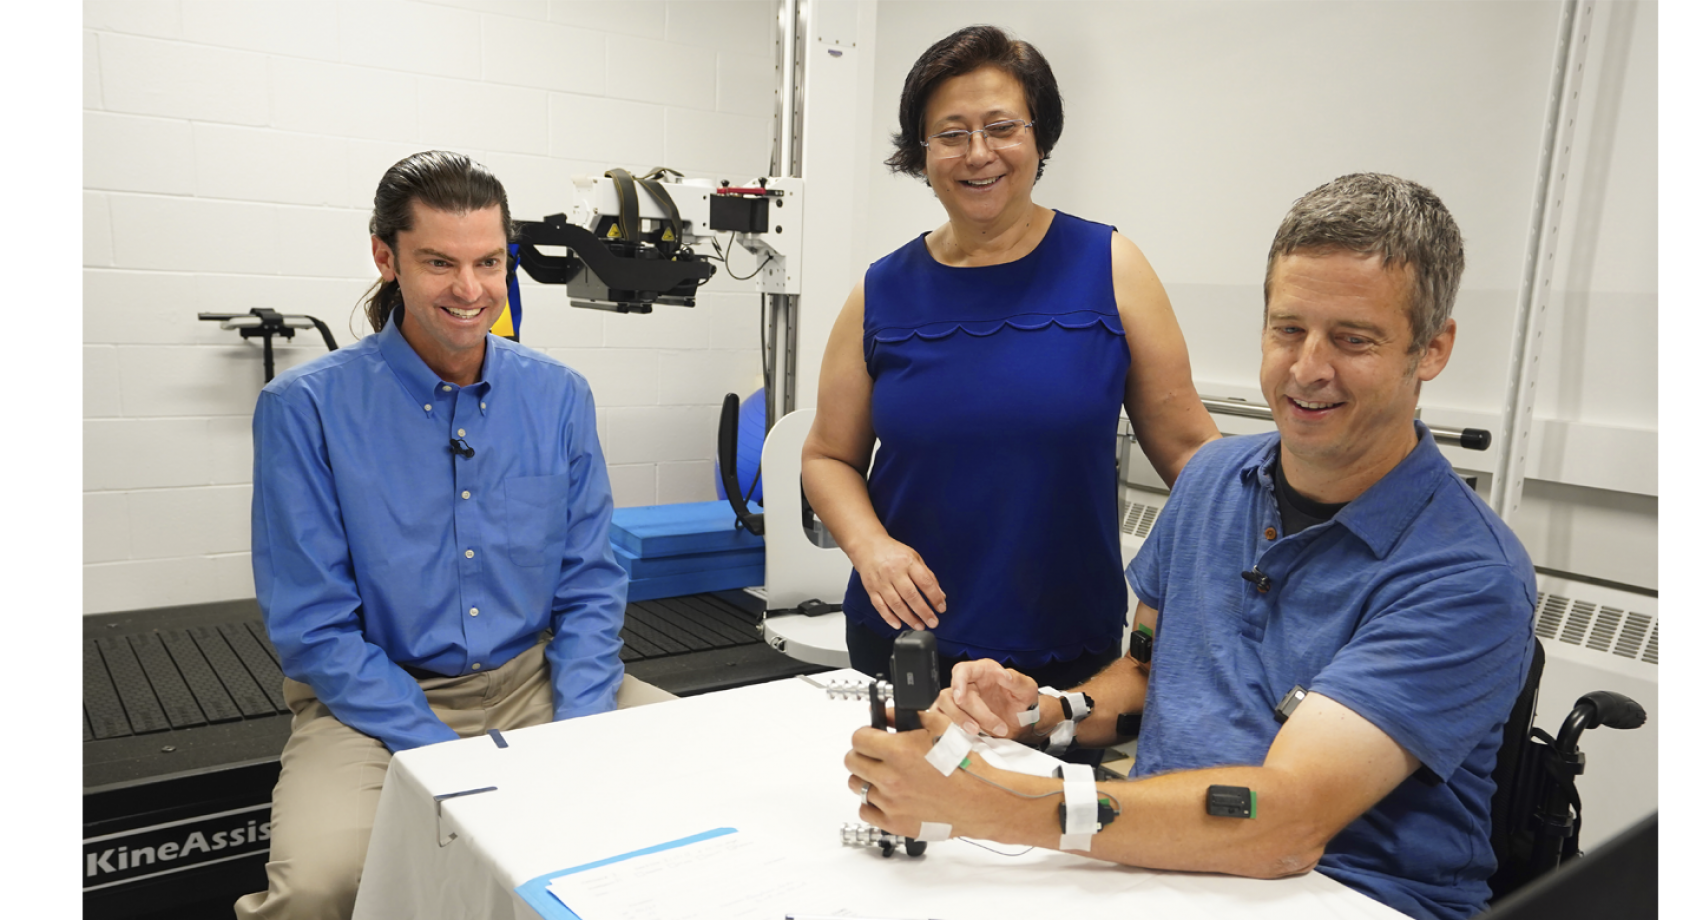 New treatment allows some people with spinal cord injury to regain hand and arm function Banner